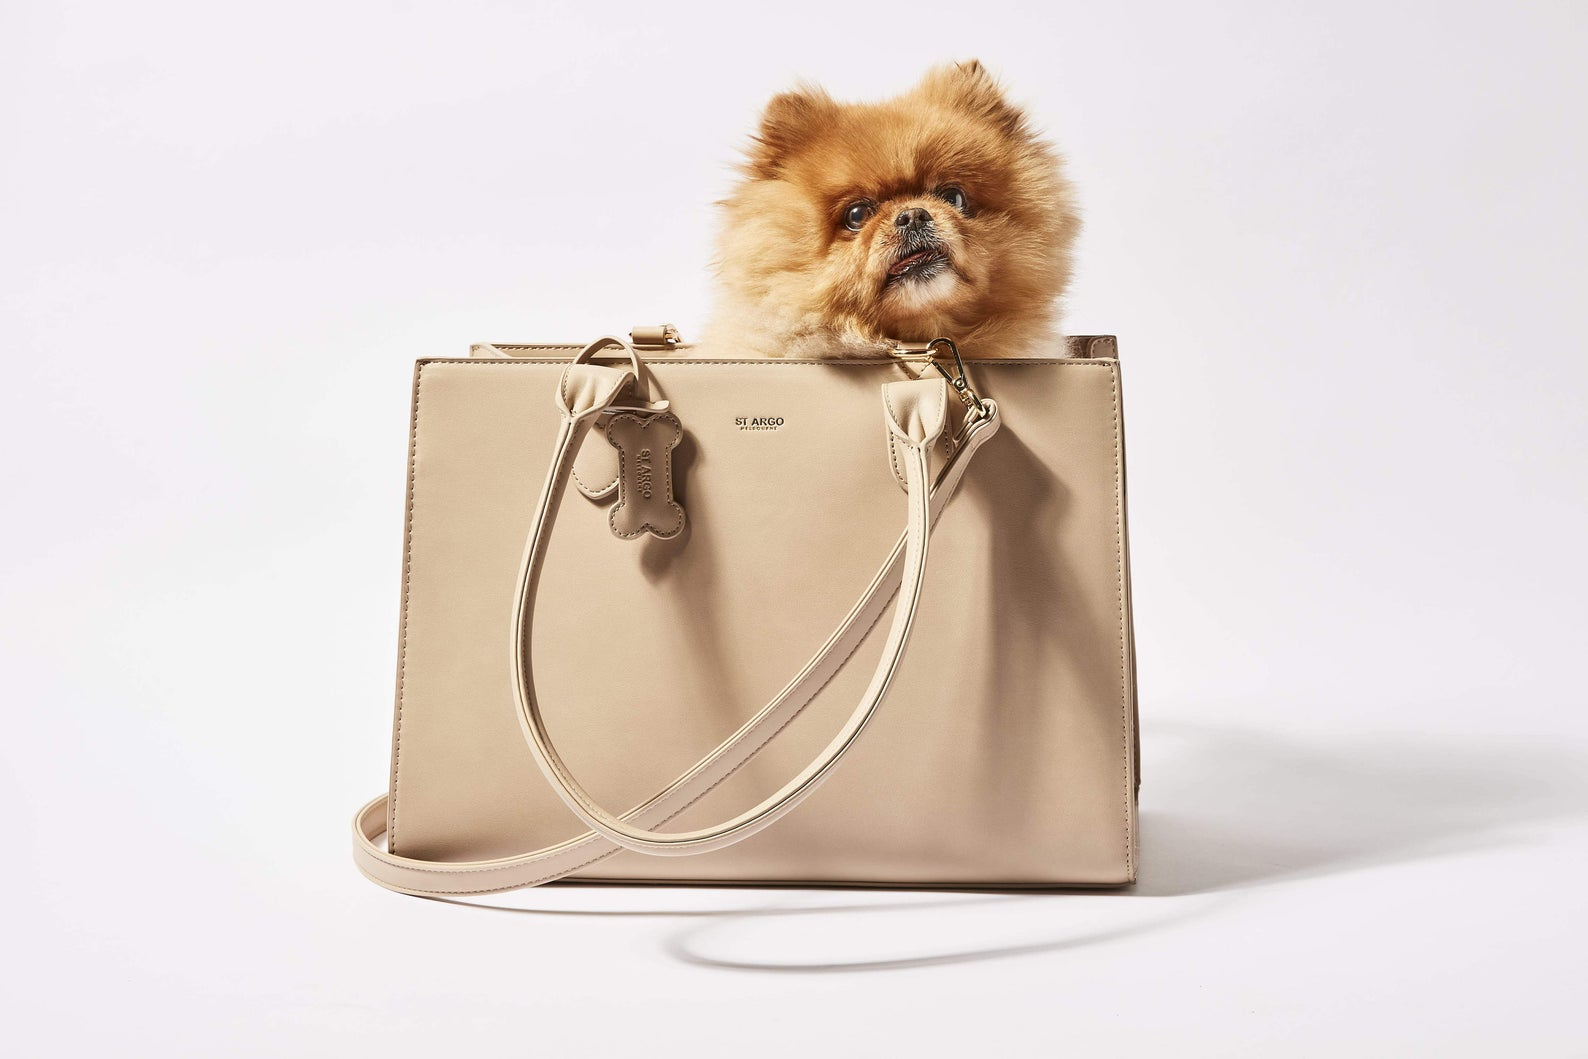 20+ Discreet Dog Purse Carrier Options For Stylish Pups - Image via St Argo Melbourne (Etsy) feat. 'St Argo Melbourne 'Lola' Beige Dog Carrier'